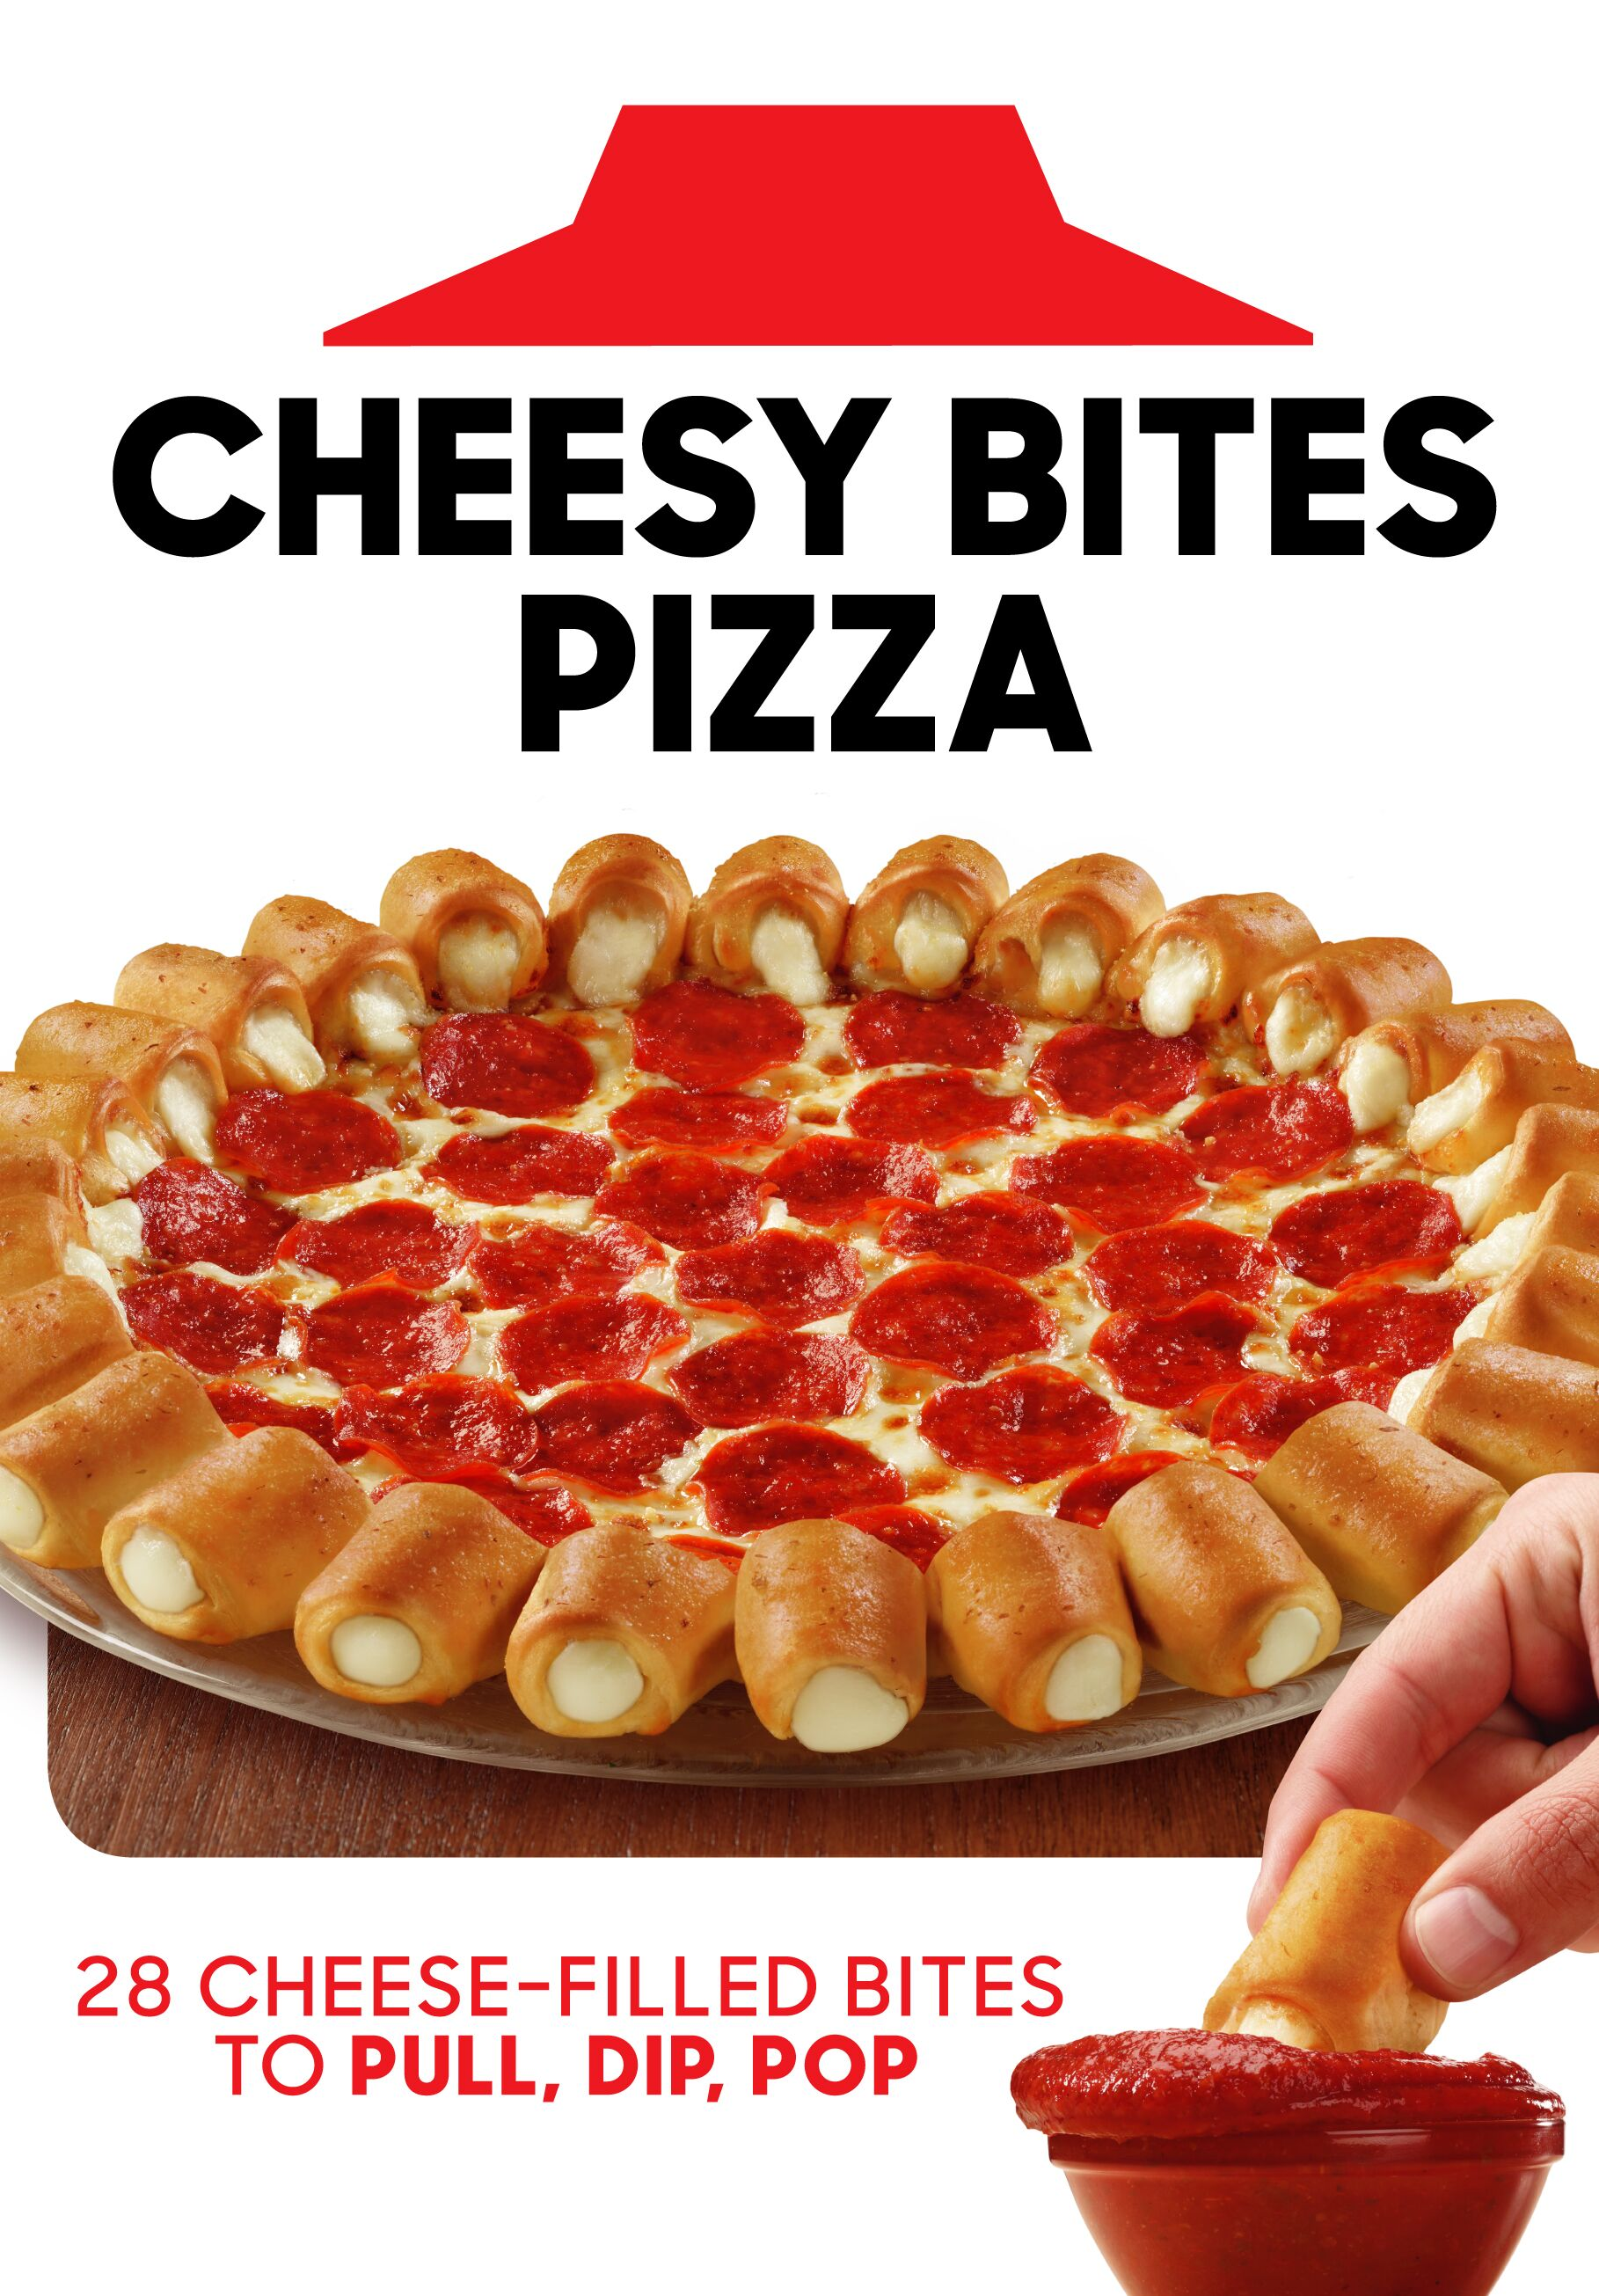 Pizza Hut brings back a fan favorite to the menu, cheesy bites